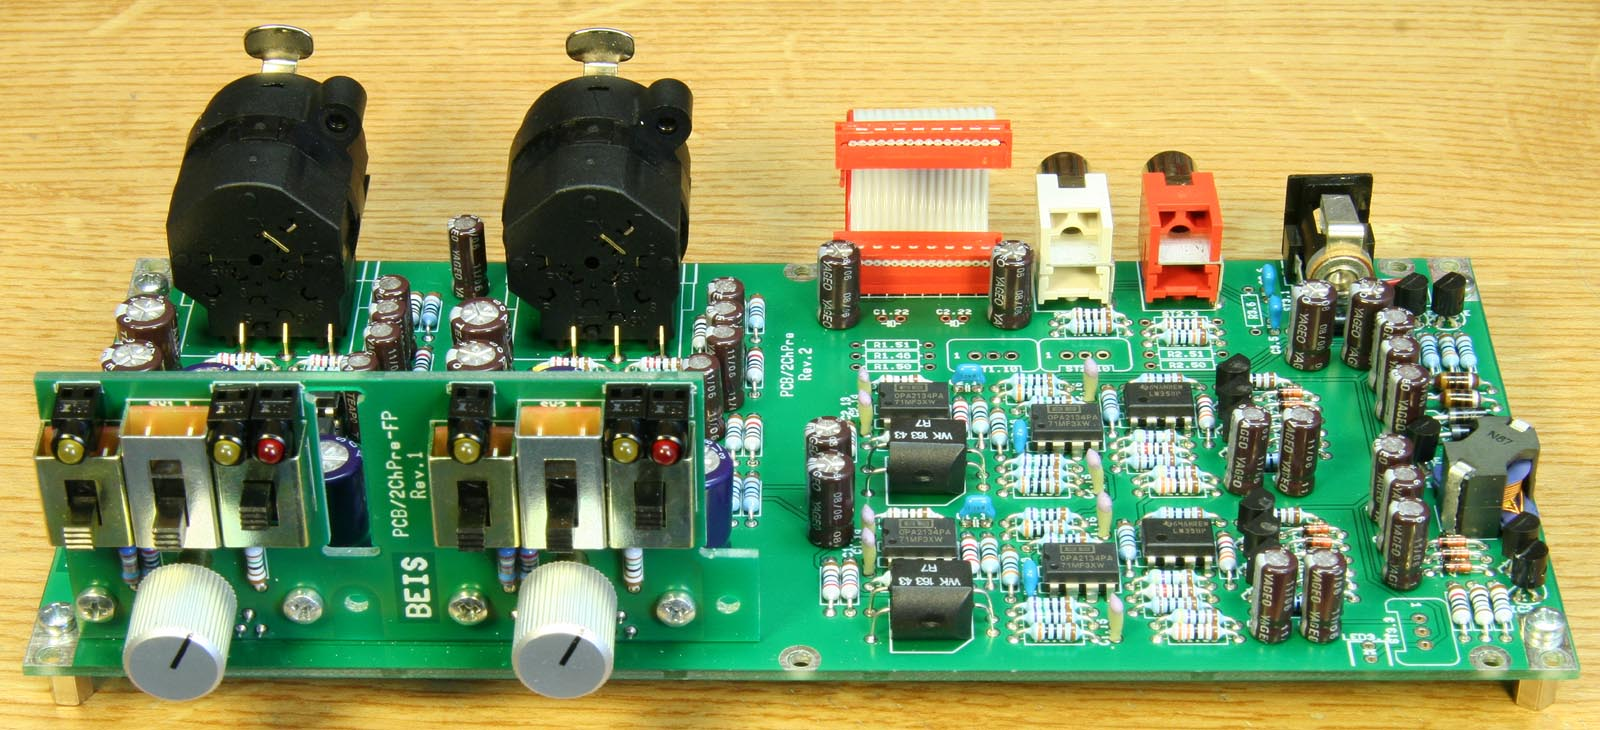 2chpre Dual Channel Preamplifier For A D Converter Ad24qs Doityourself Diy Double Sided Pcb Circuit Board Etching Do It Resolution 800 Or